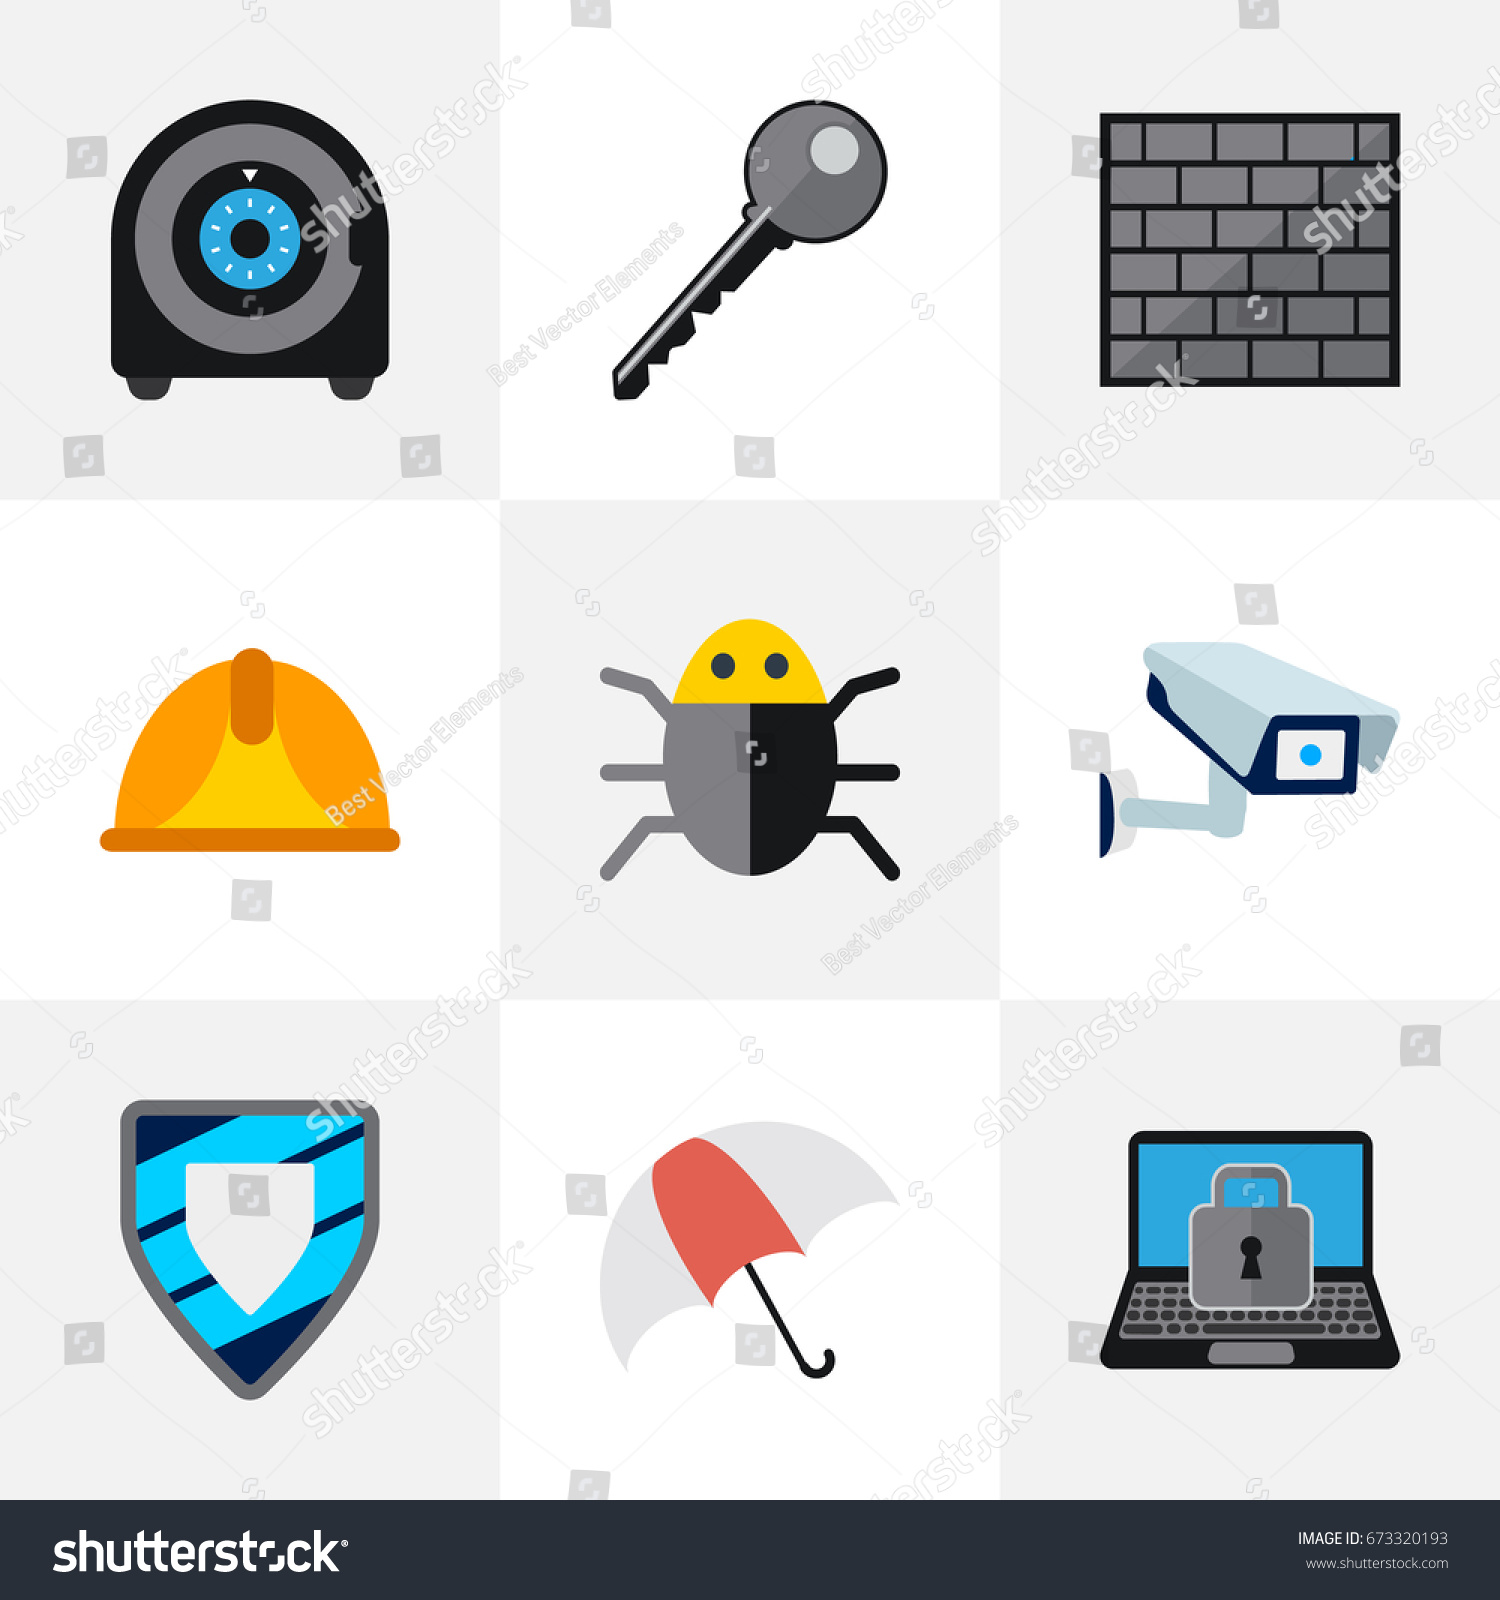 Set 9 Editable Safety Icons Includes Stock Vector 673320193